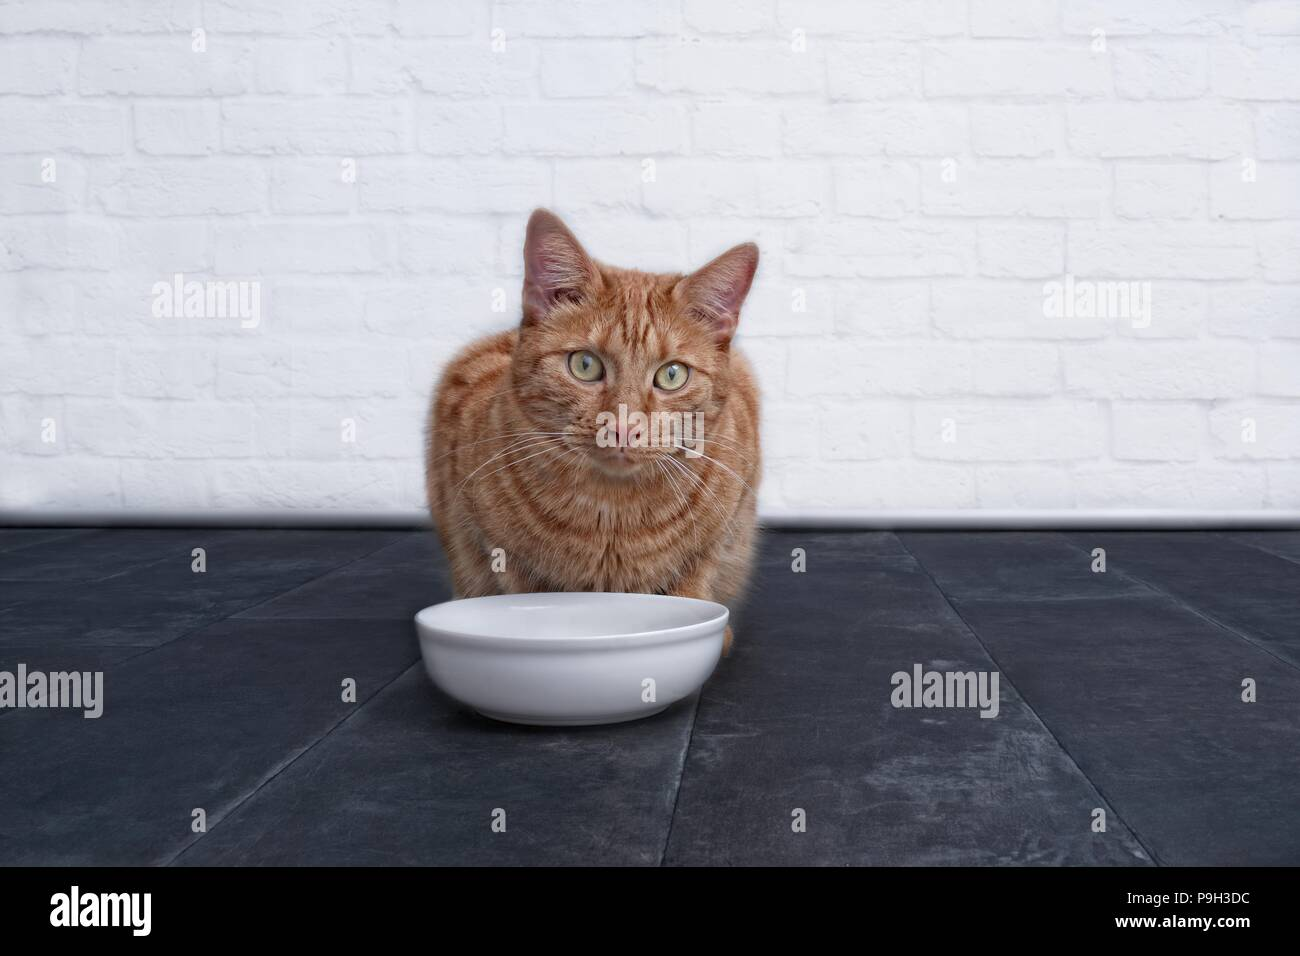 Cute ginger cat waiting for food. - Stock Image